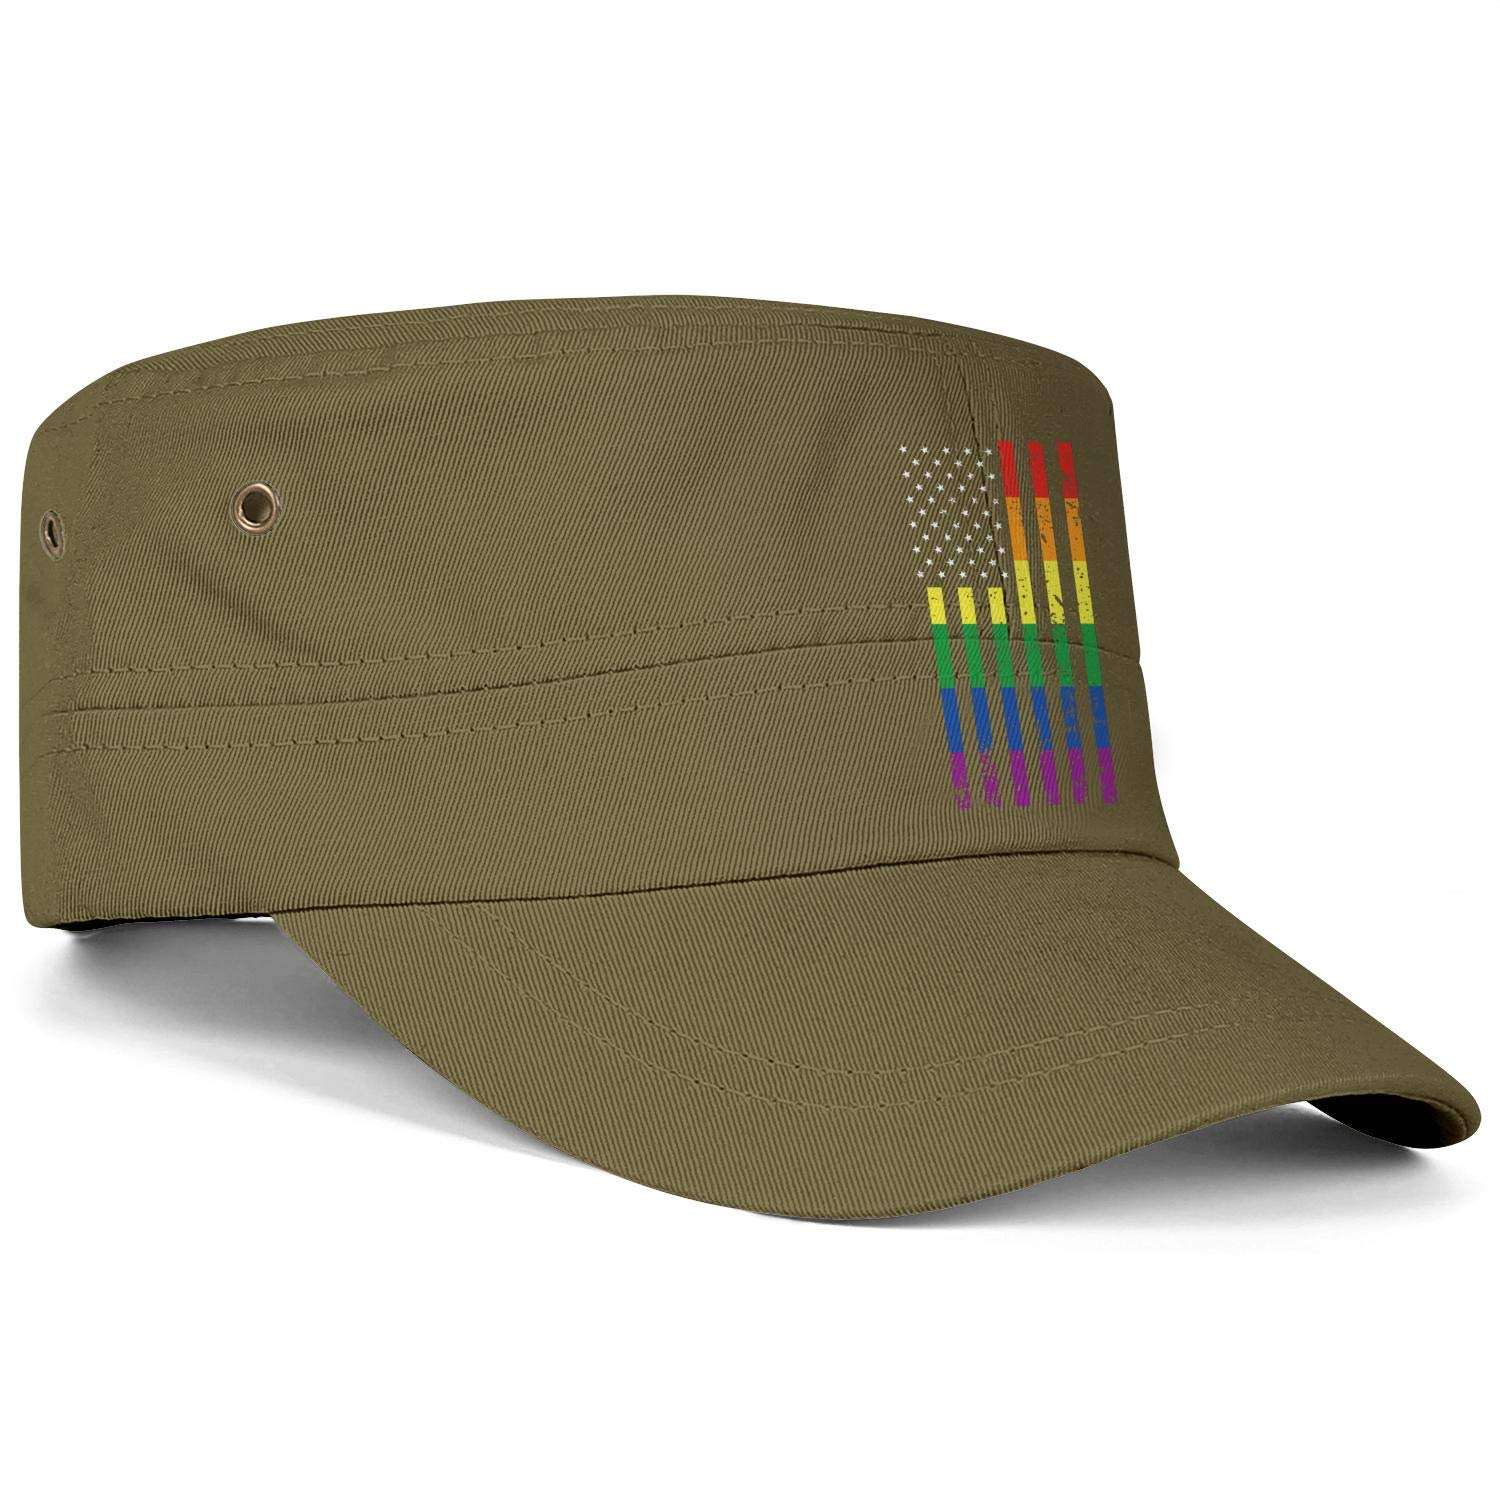 Unisex Military Hat Distressed Rainbow Flag Gay Pride Style Vintage Flat Top Cadet Army Caps